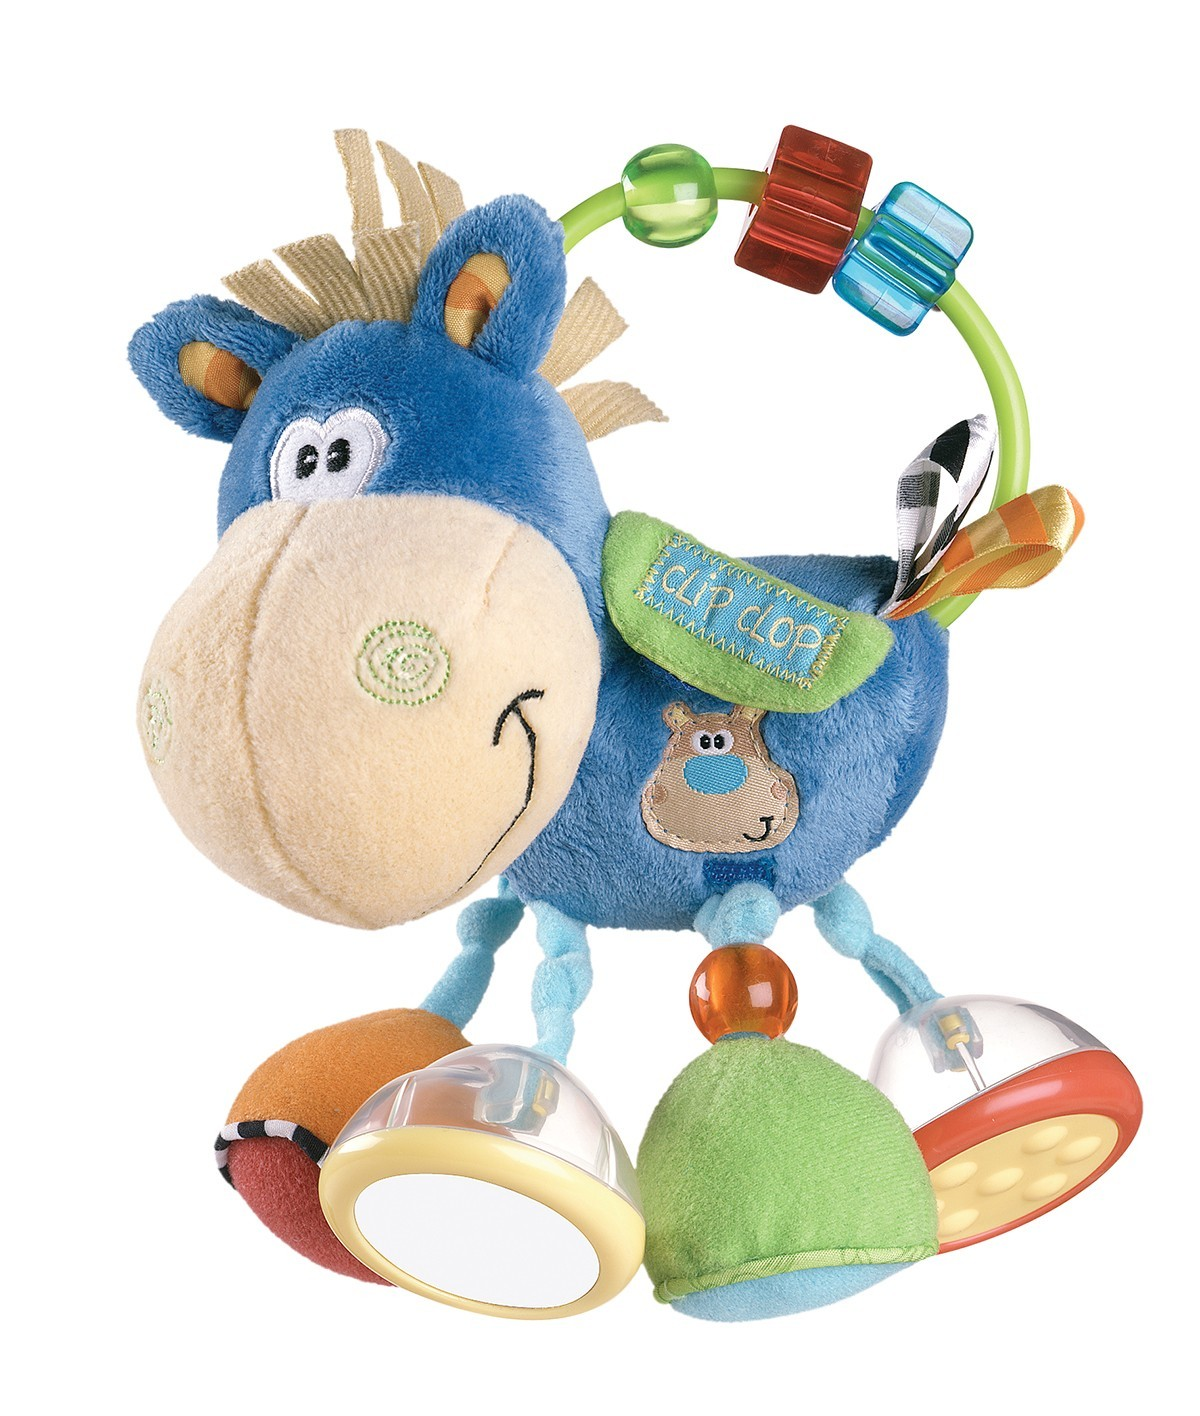 Playgro Clip Clop Activity Rattle image